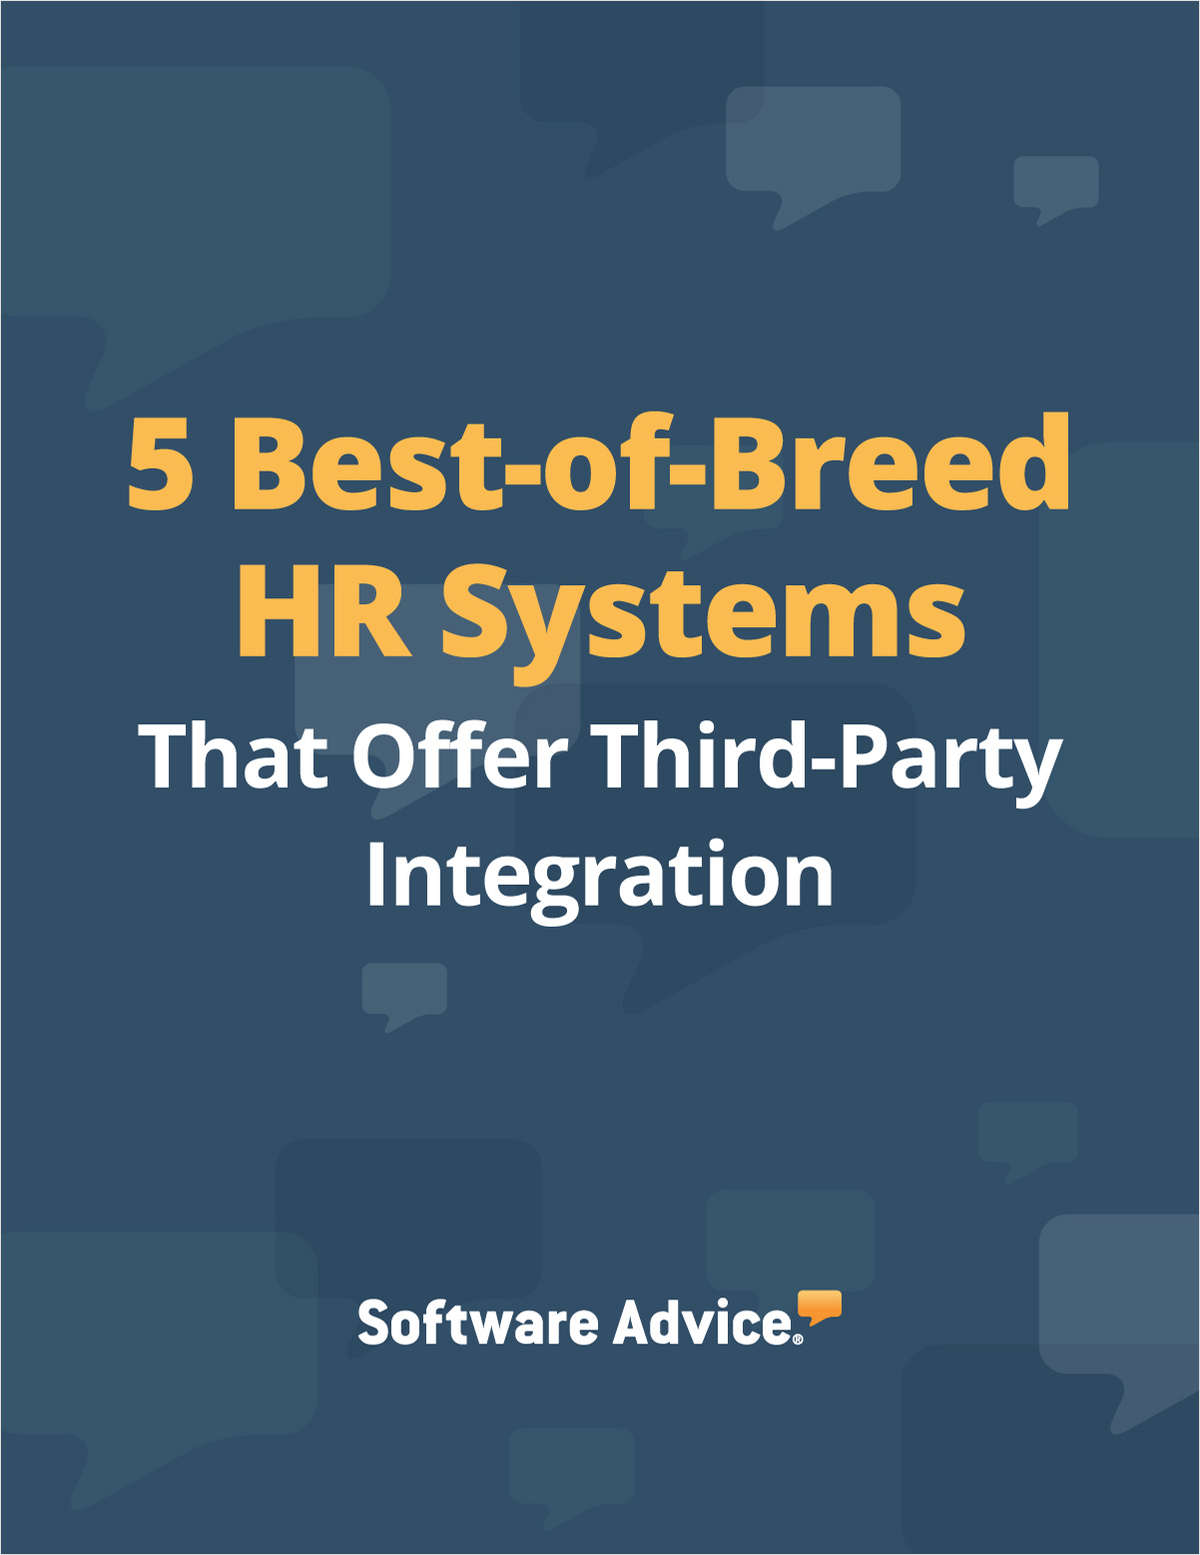 5 Best-of-Breed HR Systems That Offer Third-Party Integration